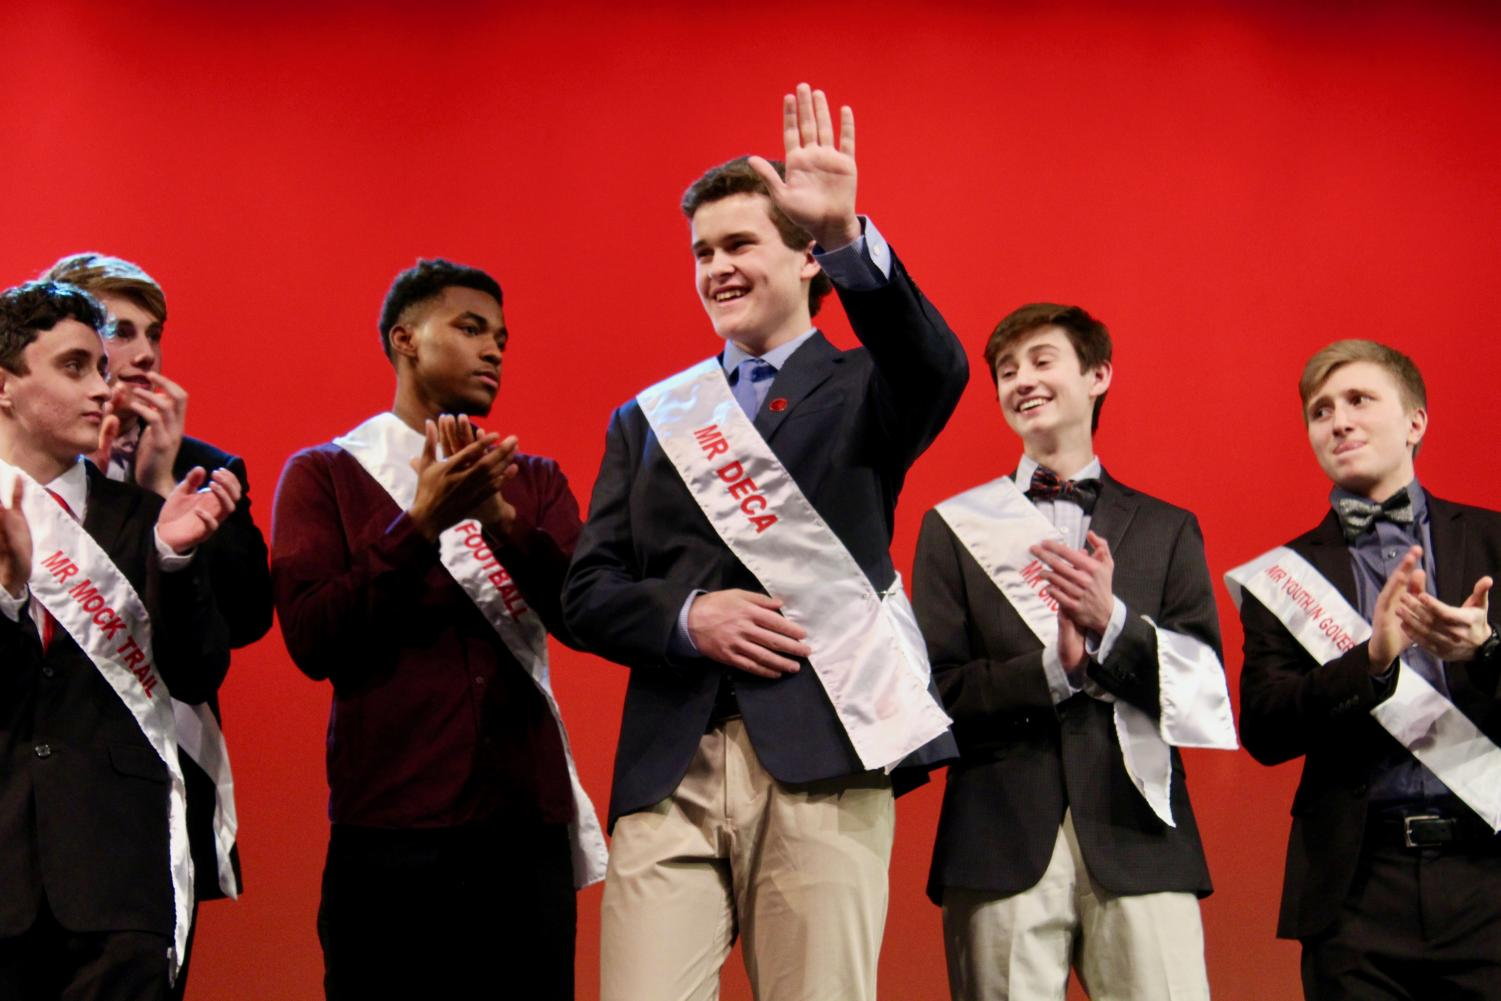 Jack+Dunn%2C+senior%2C+waves+to+the+crowd+after+being+announced+as+the+first+runner-up+for+Mr.+KHS.